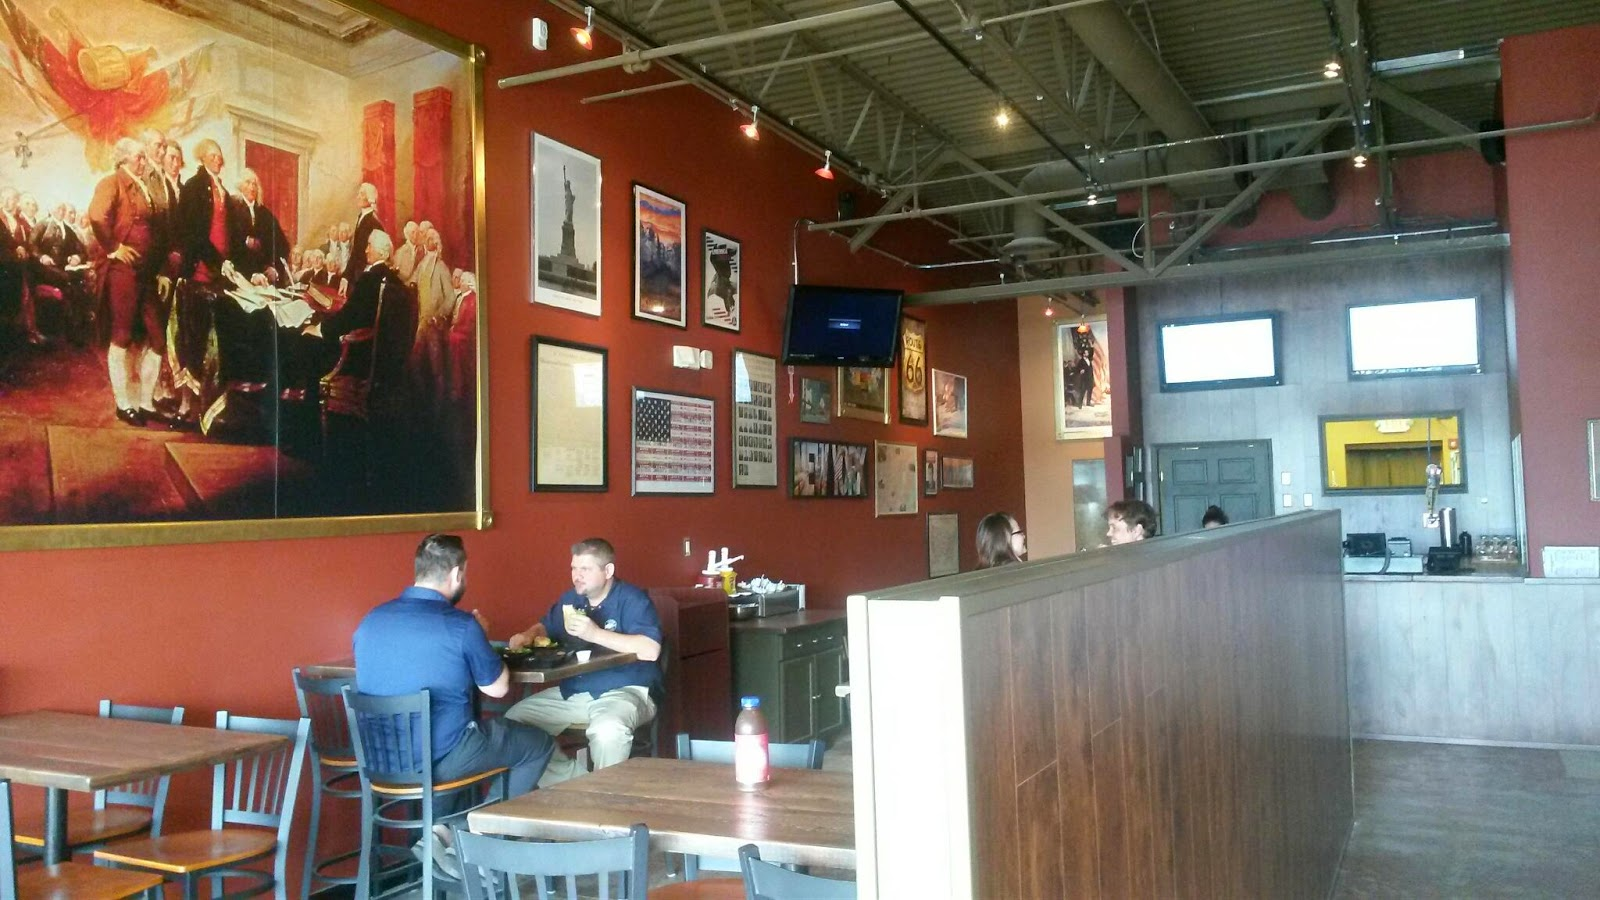 Welcome To East Meats West Food American Burger Bar Beer Boutique